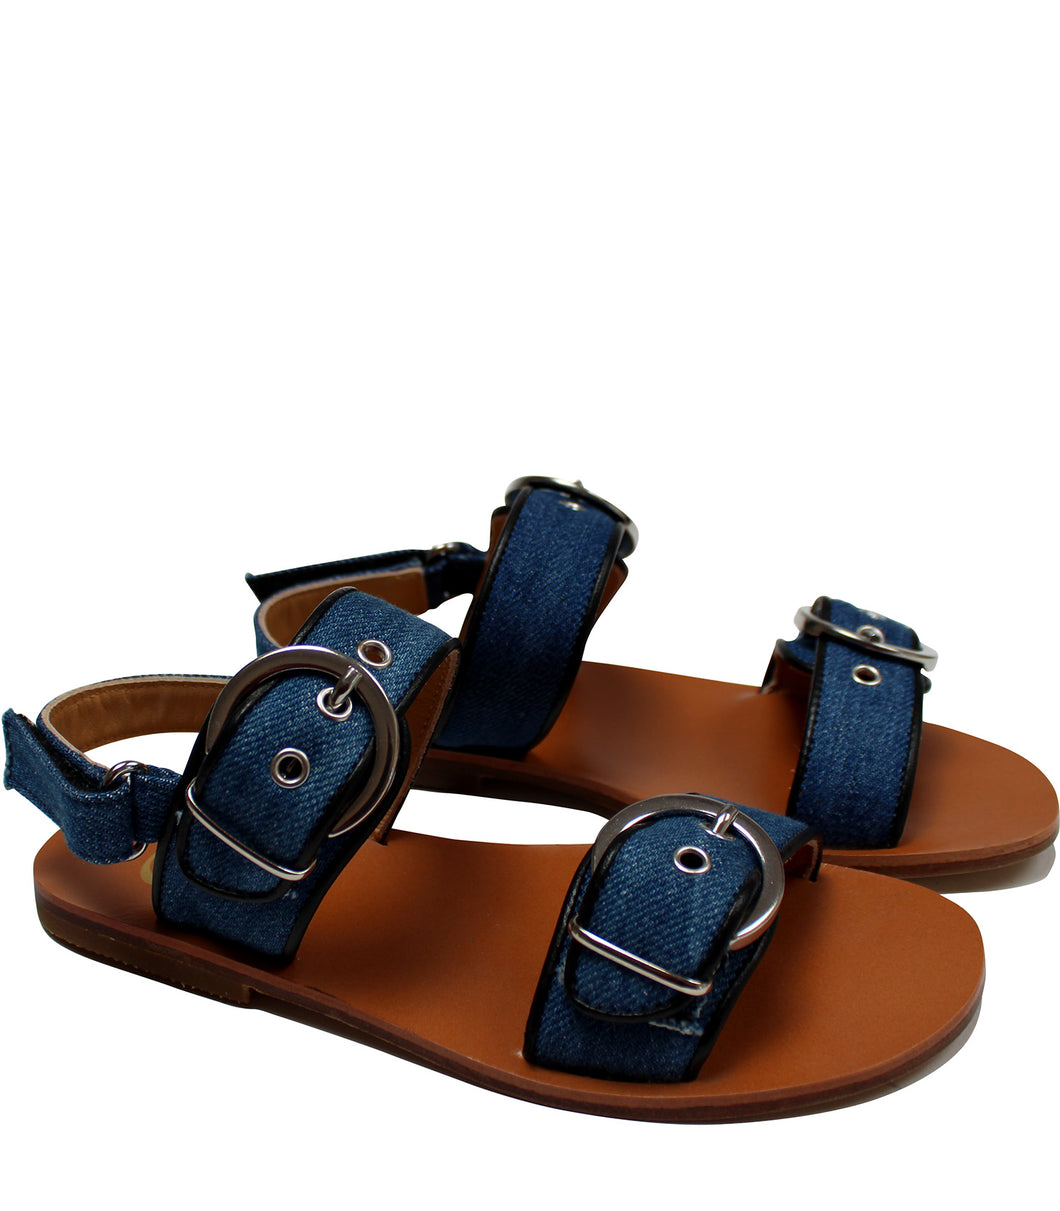 Iconic denim sandals